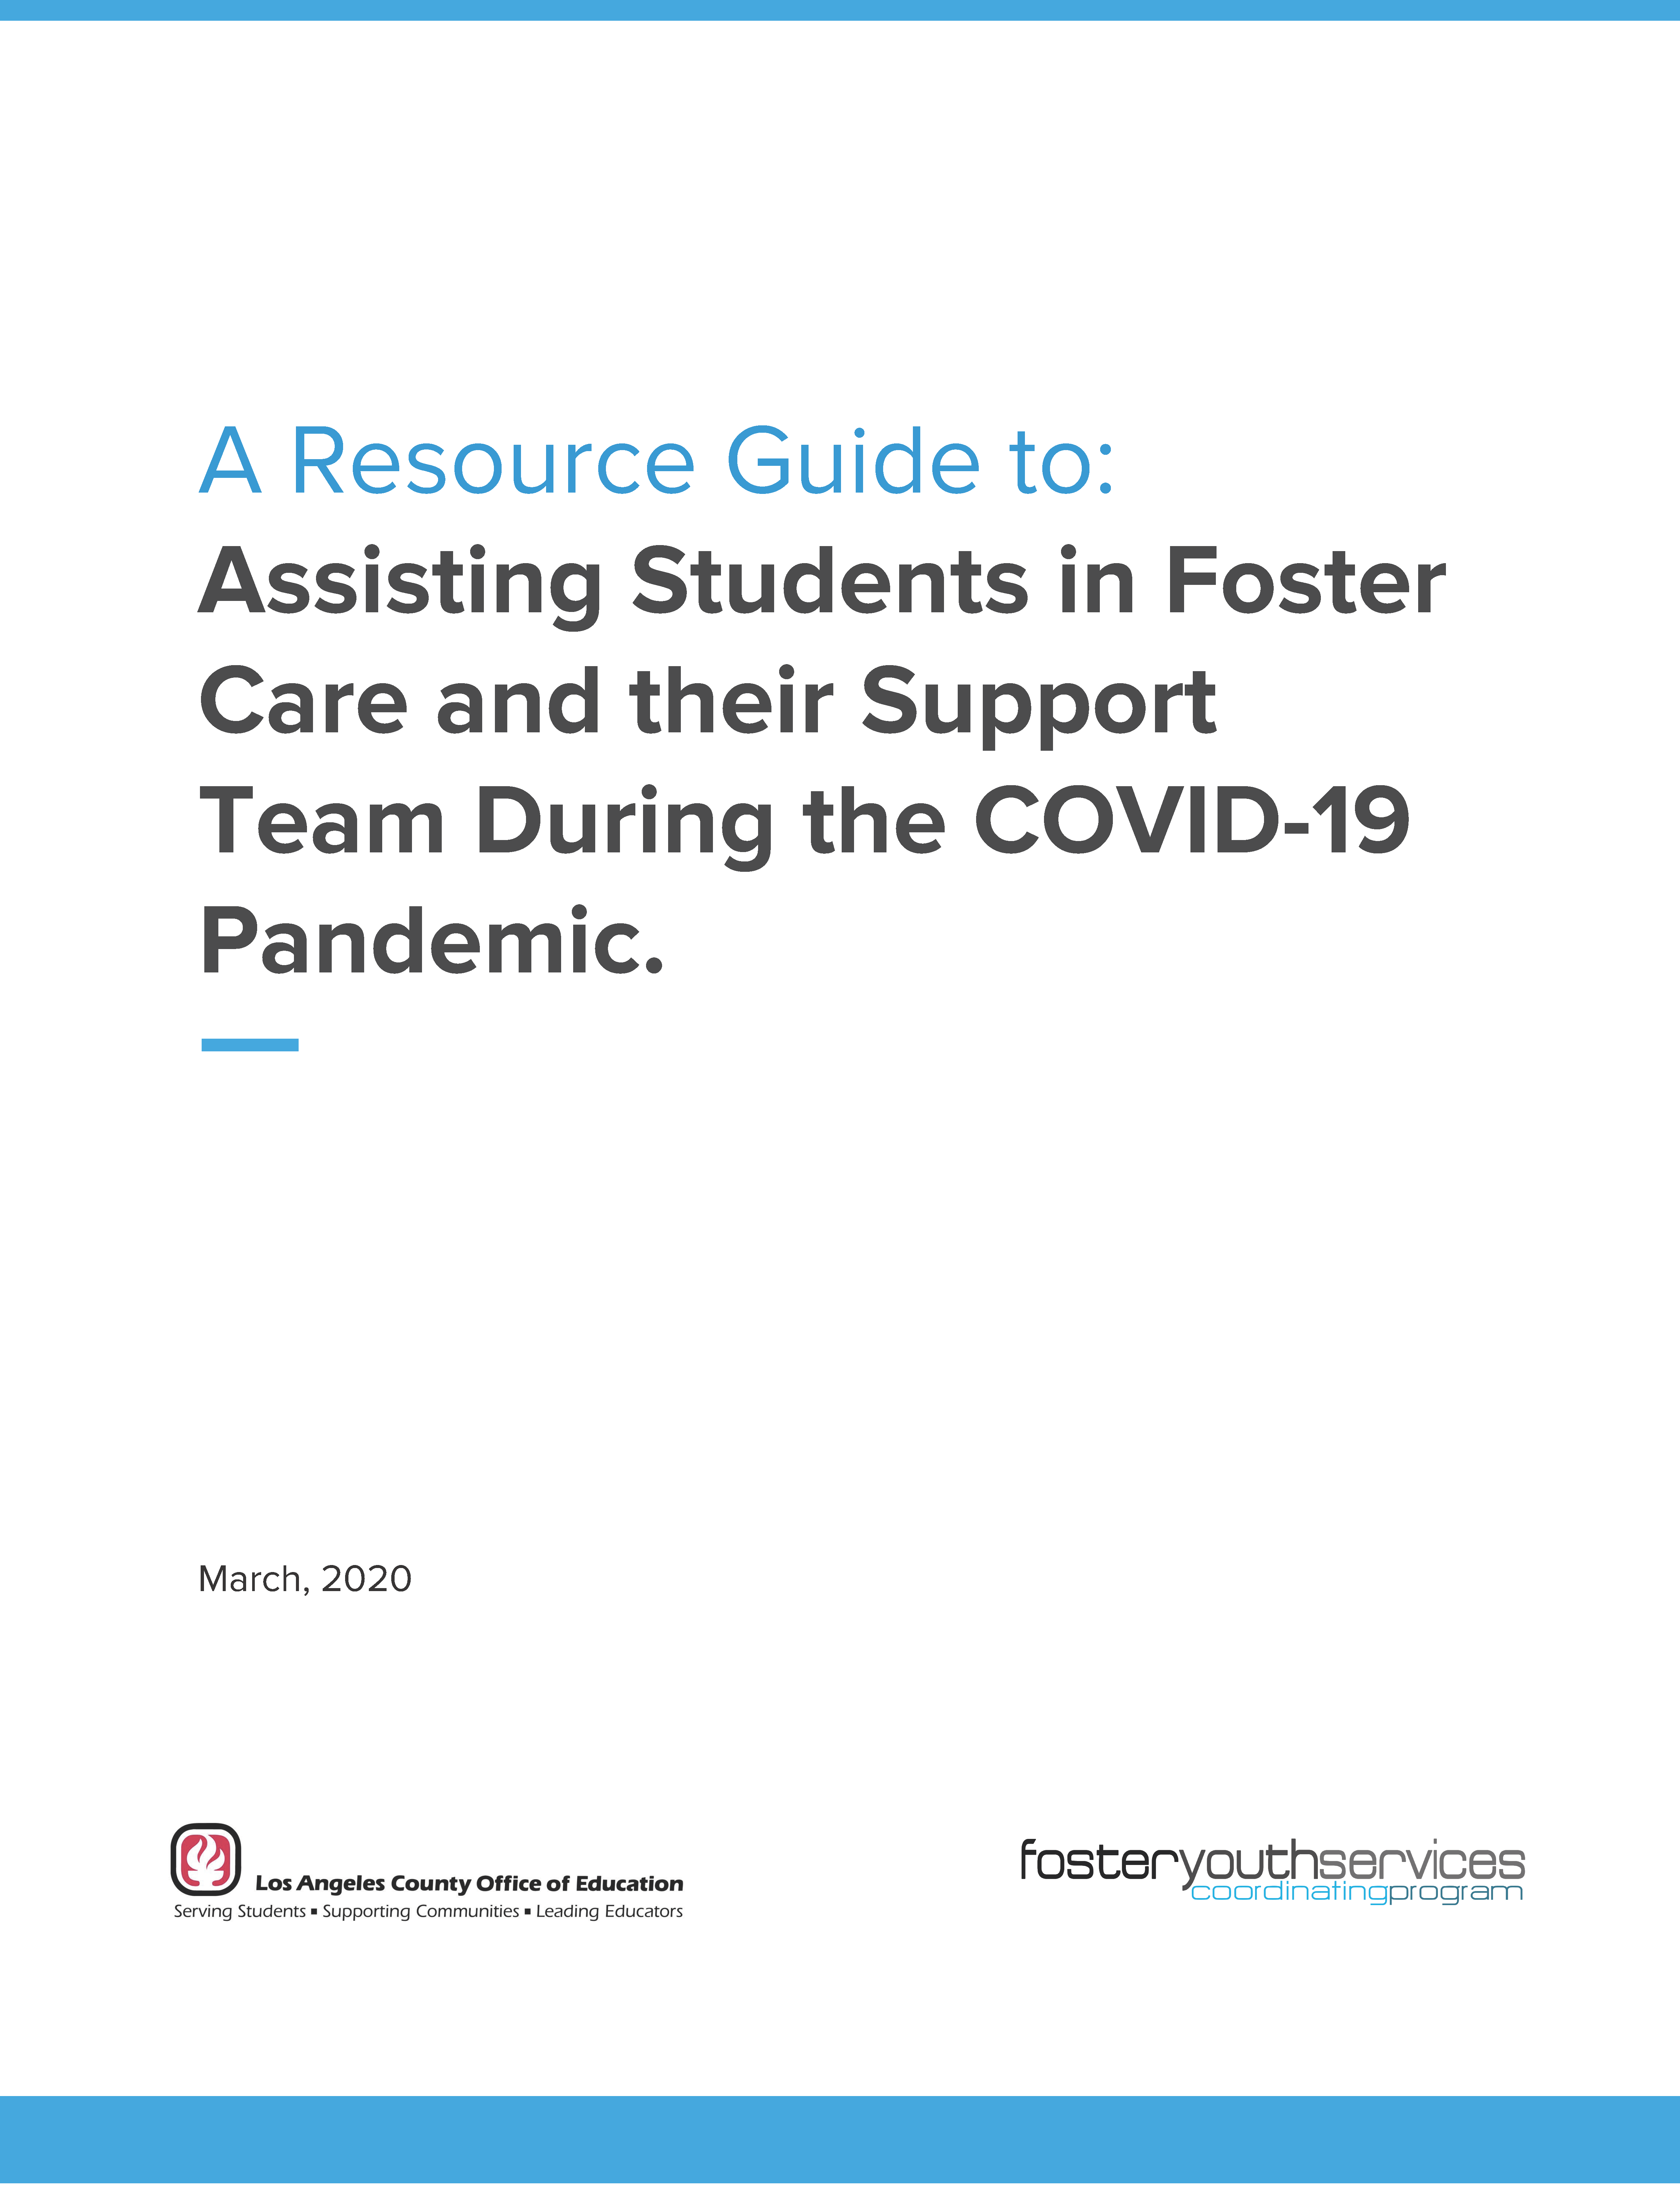 FYSCP Resource Guide for Students and Support Teams